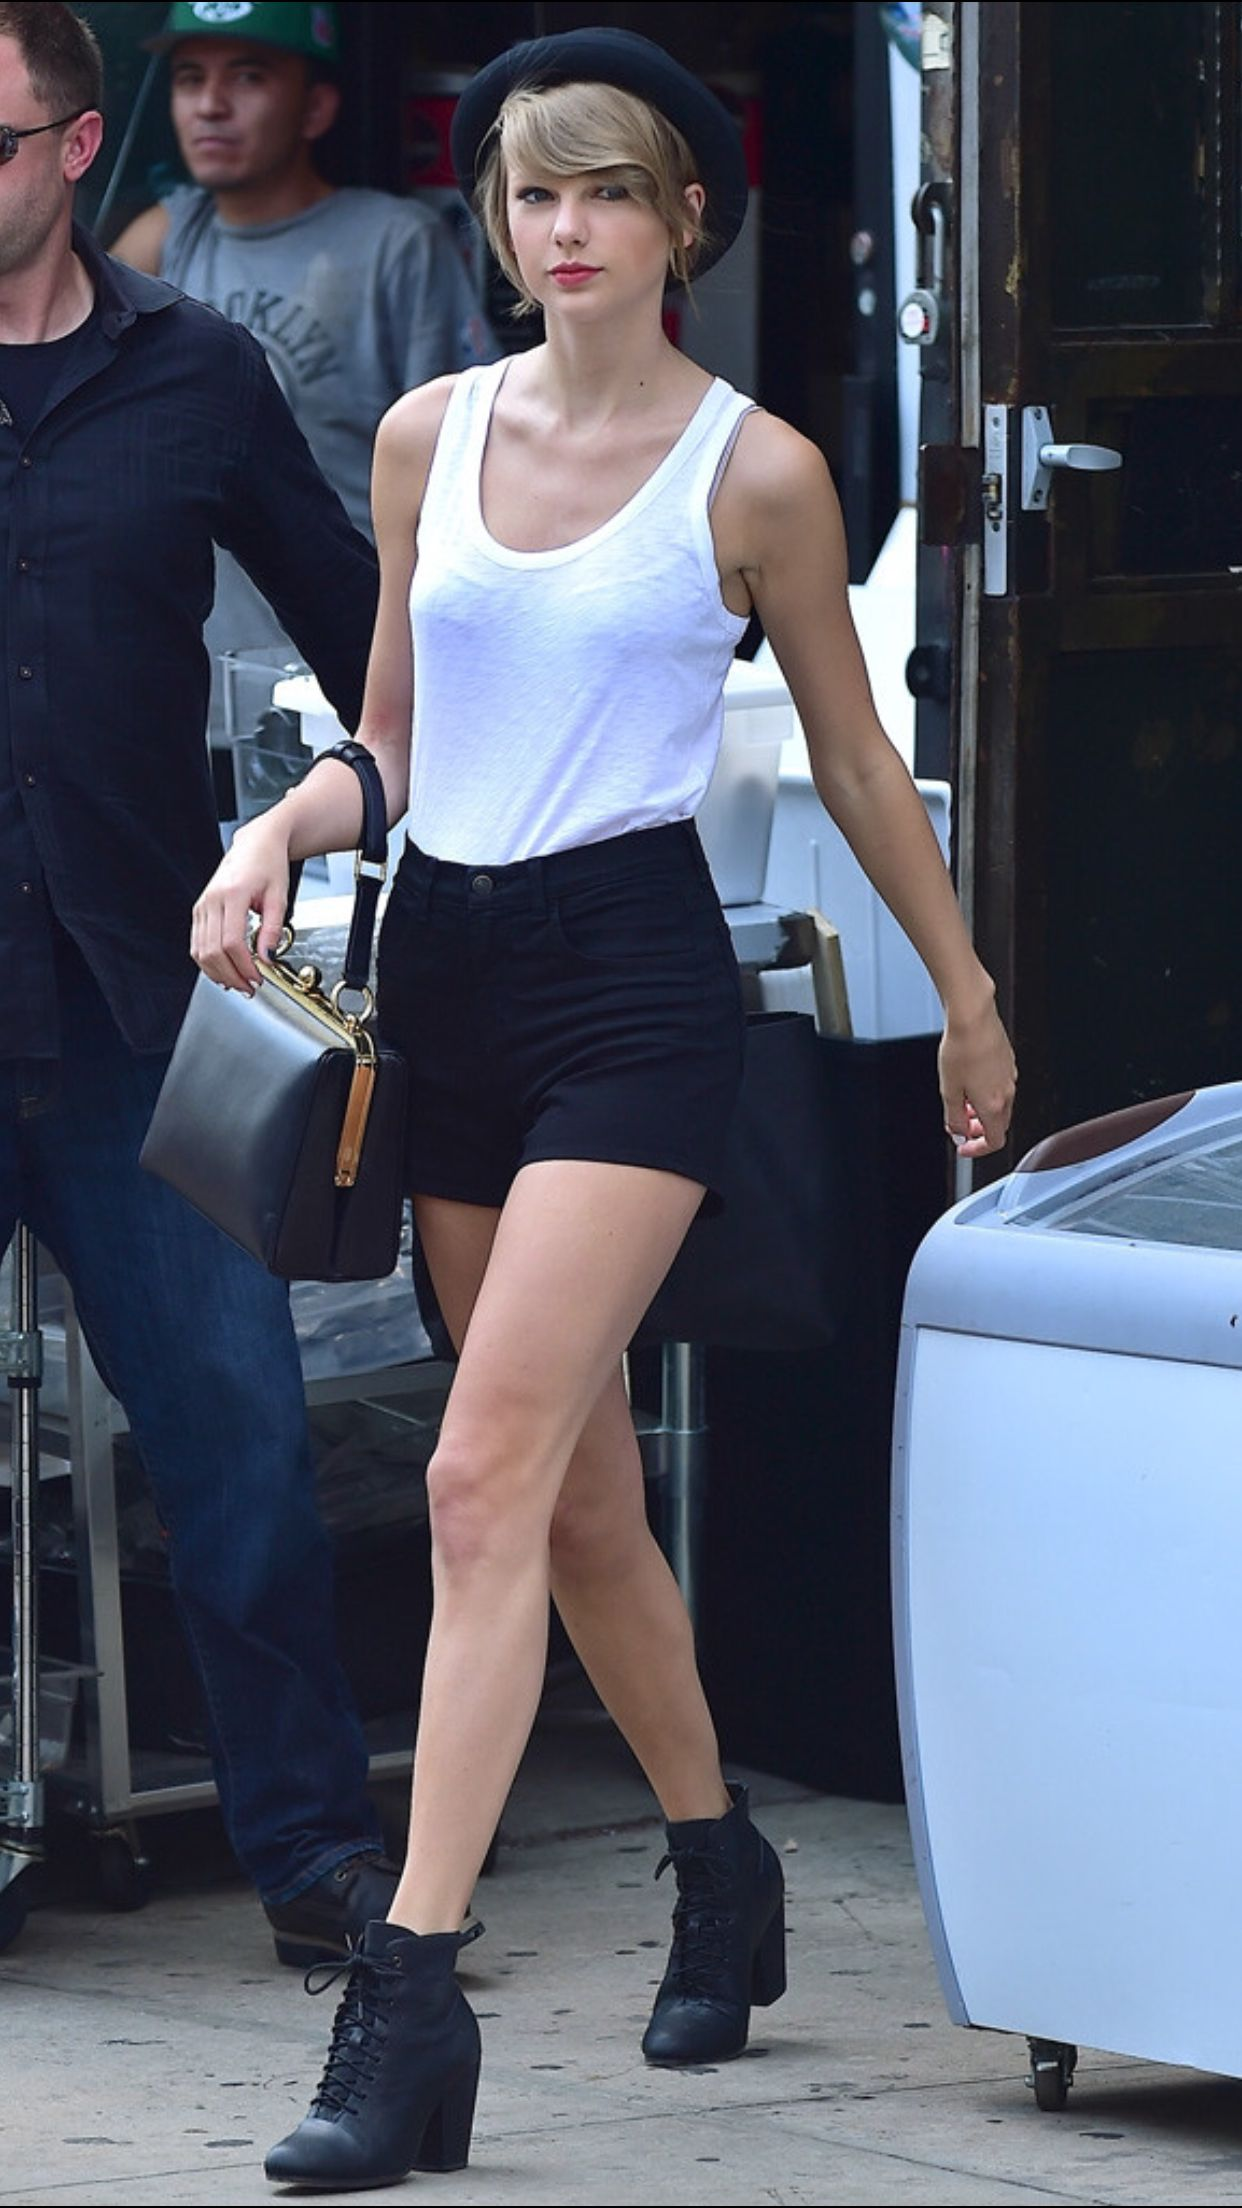 Pin by Heather Ashley on Elegant Taylor S. | Taylor swift ...